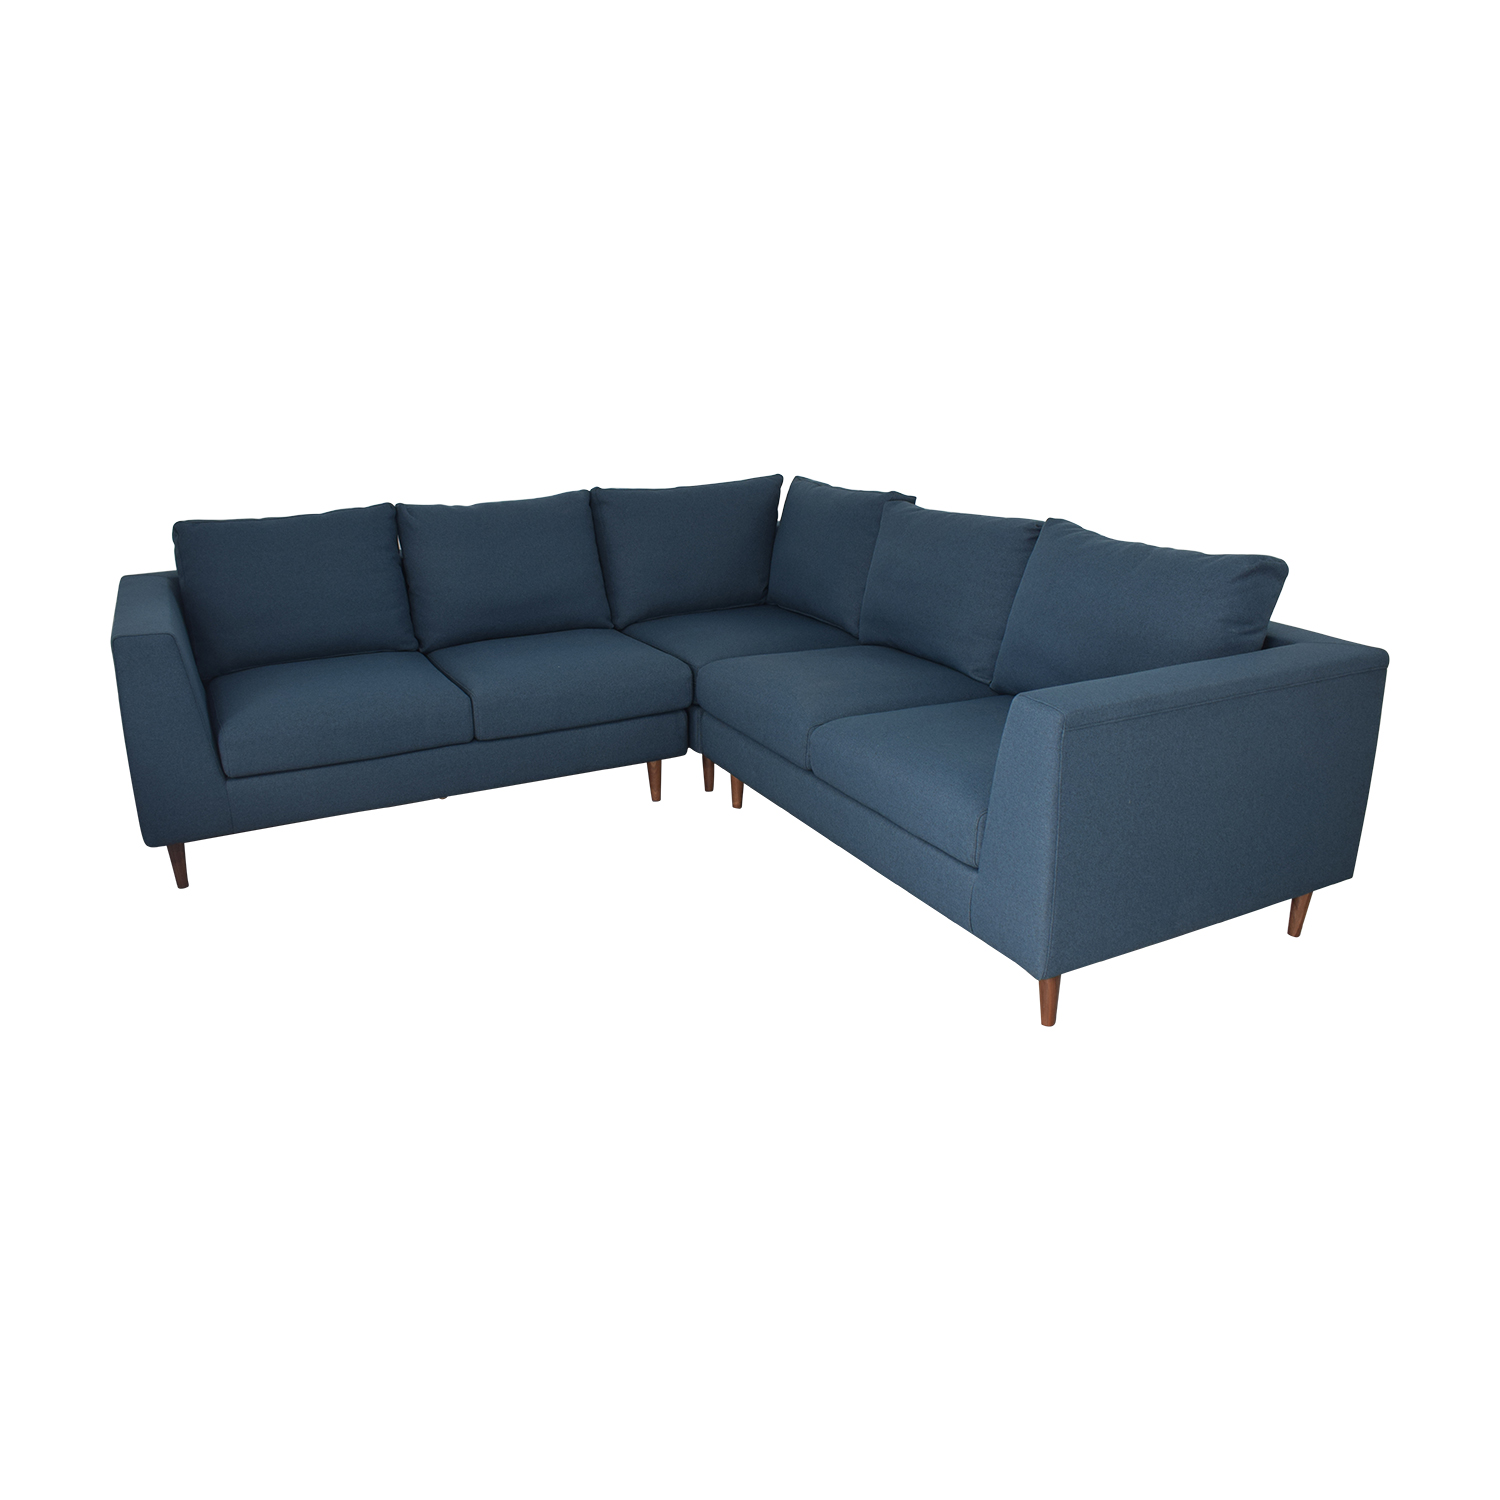 Pleasant 56 Off Asher Aegean Blue Sectional With Down Alternative Cushions Sofas Pdpeps Interior Chair Design Pdpepsorg